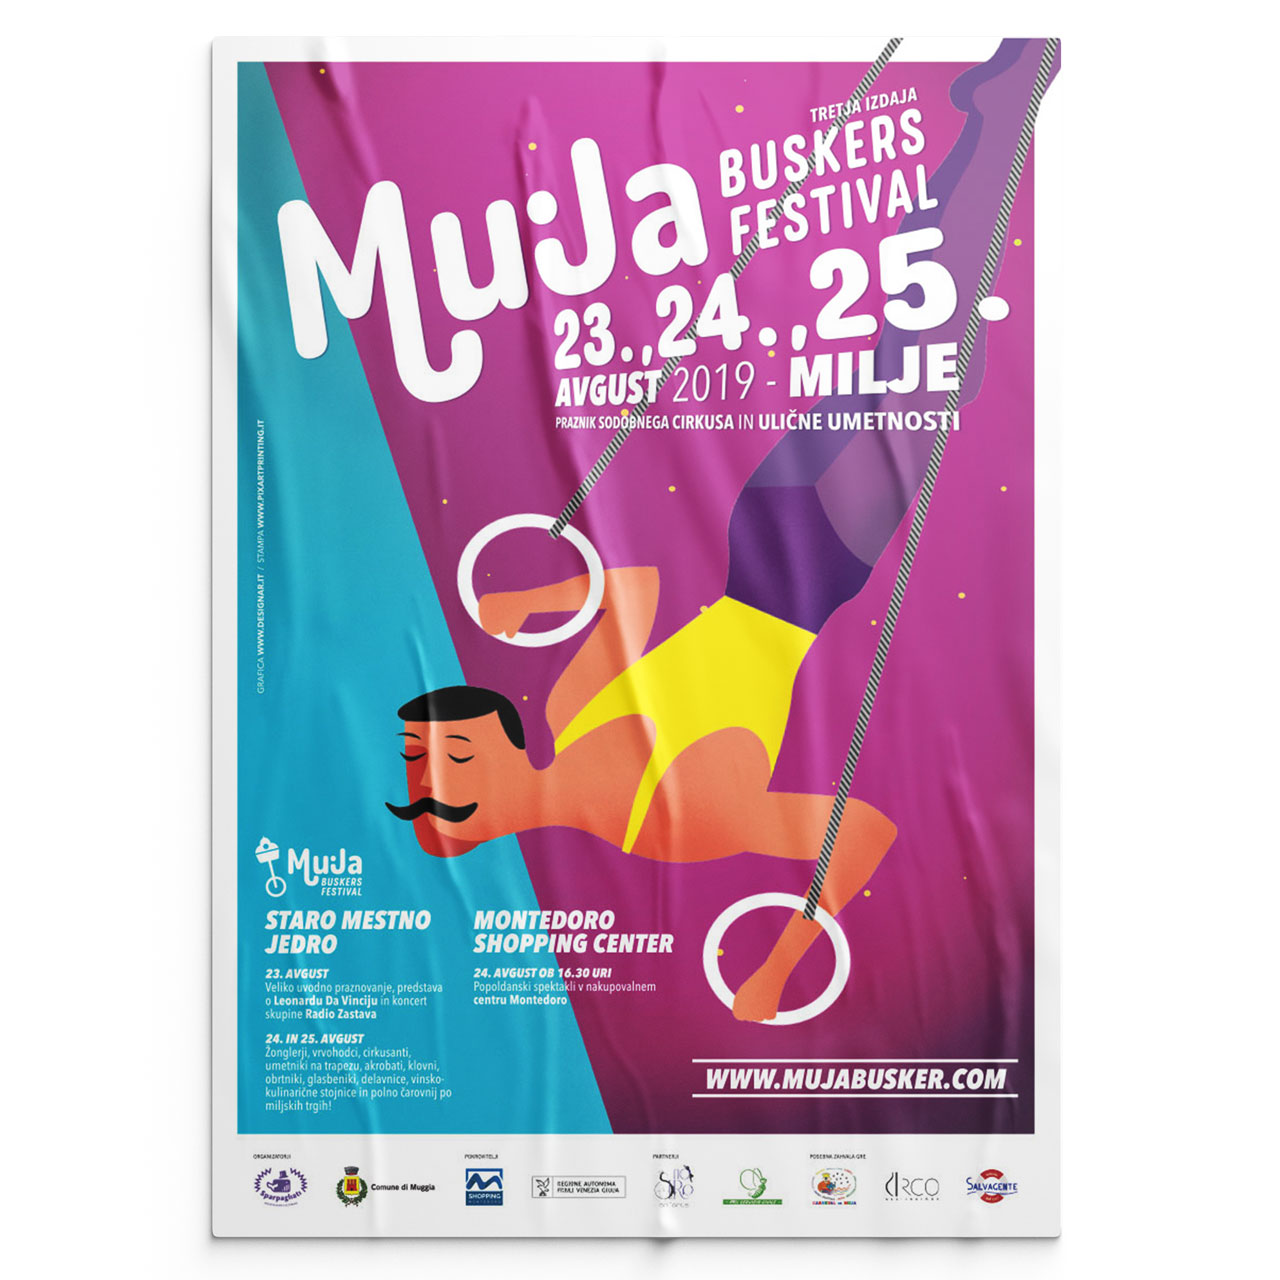 Muja Buskers Festival poster